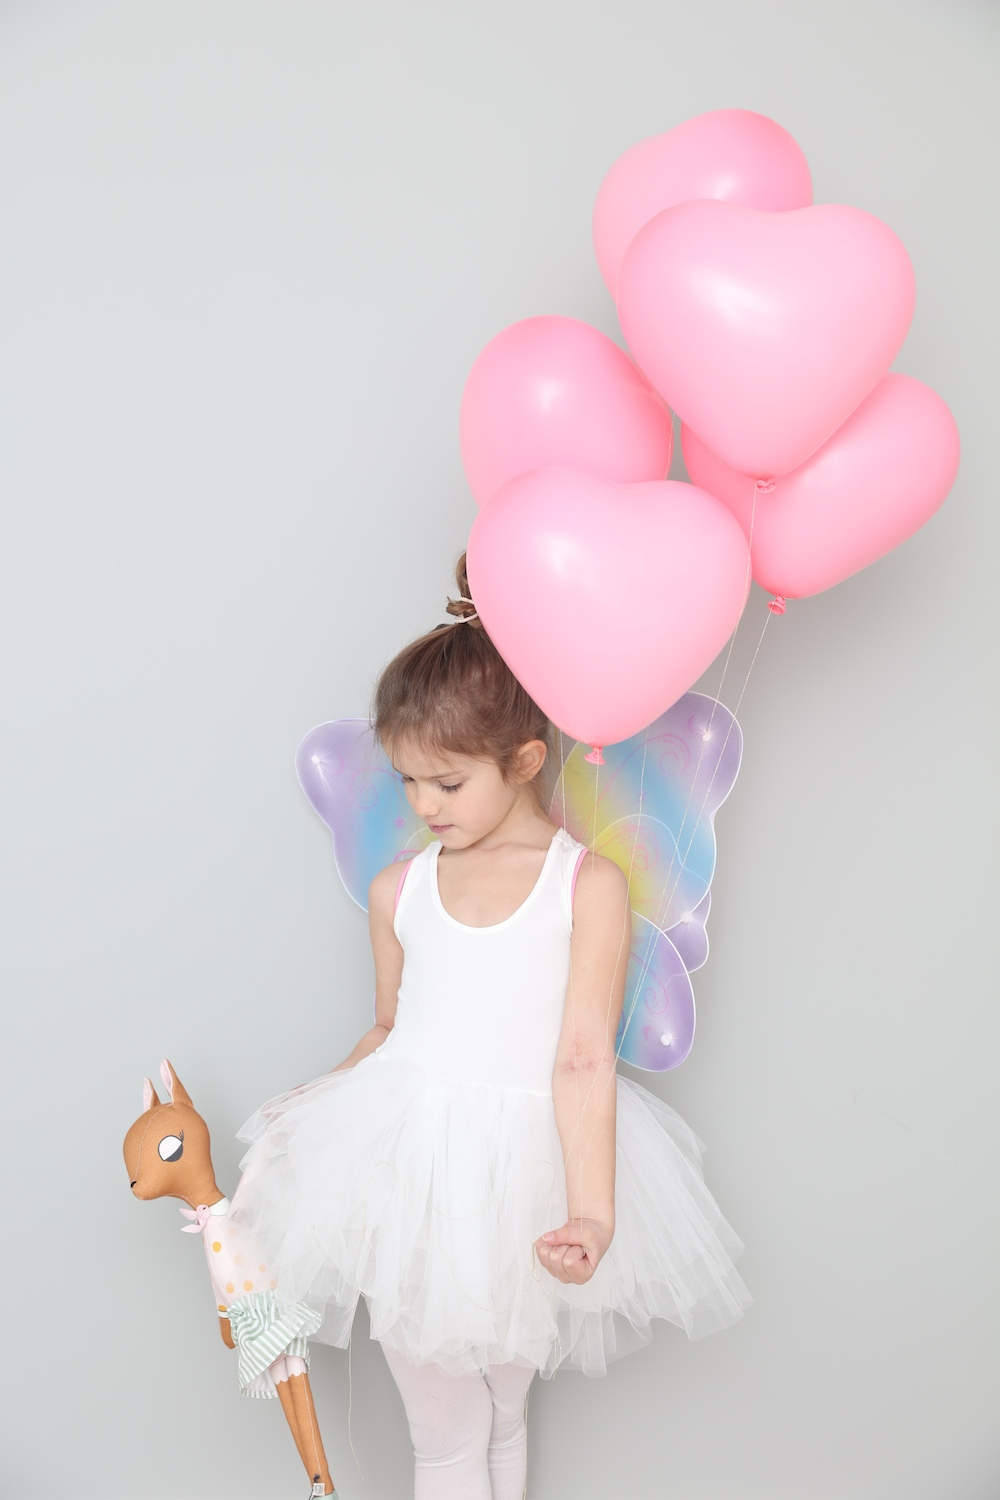 girl_ballerina_plum_nyc_tutu_little_lulubel)balloons_heart_pink